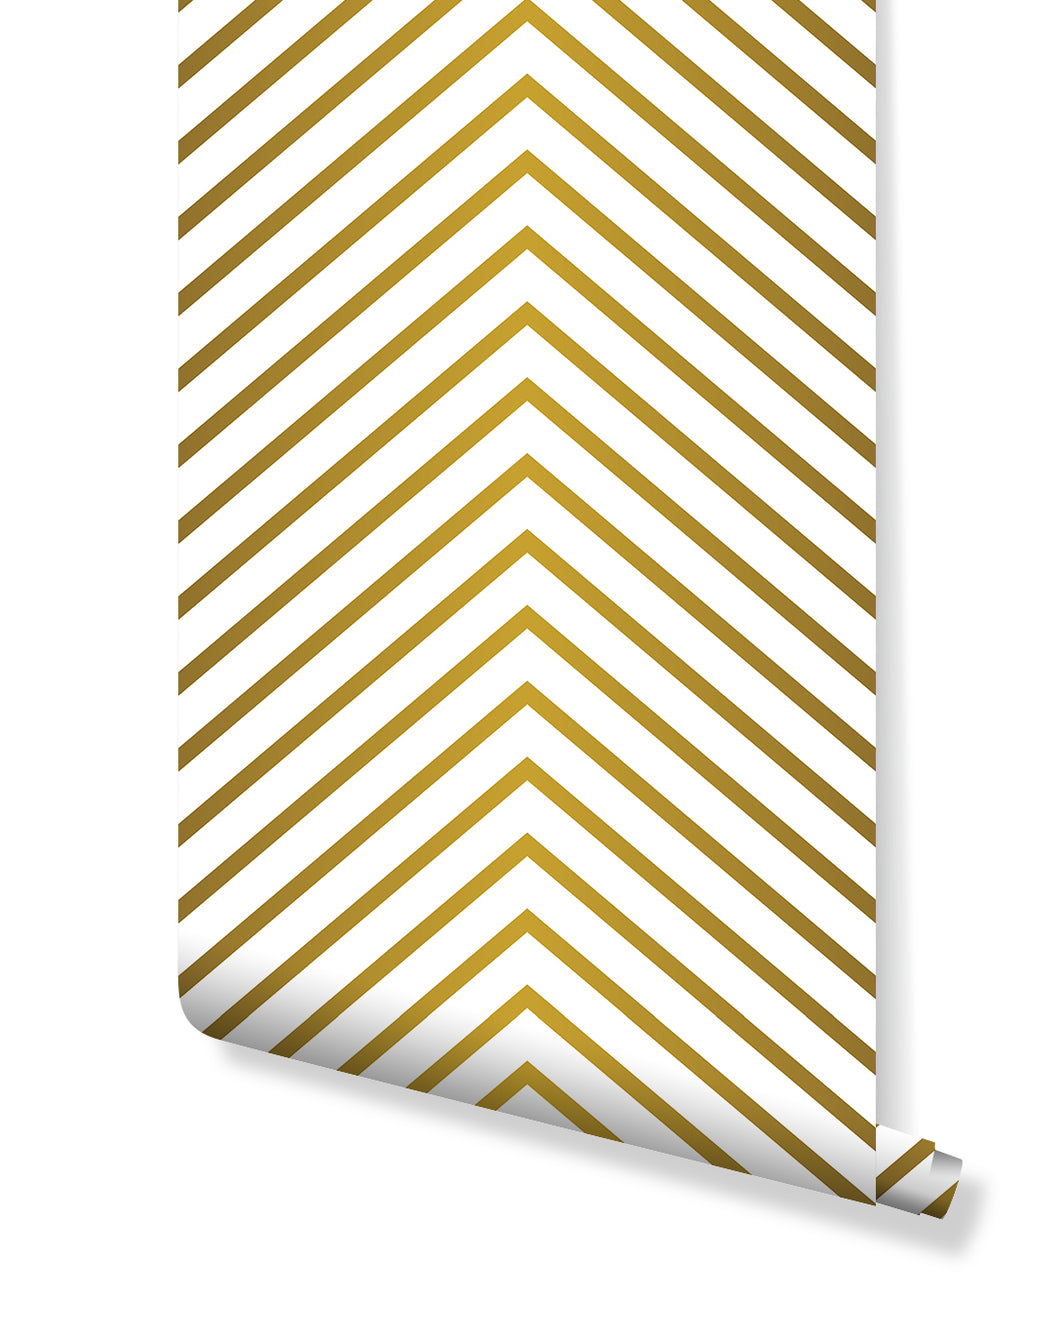 Self Adhesive Gold Zigzag Chevron Removable Wallpaper Vinyl – CostaCover